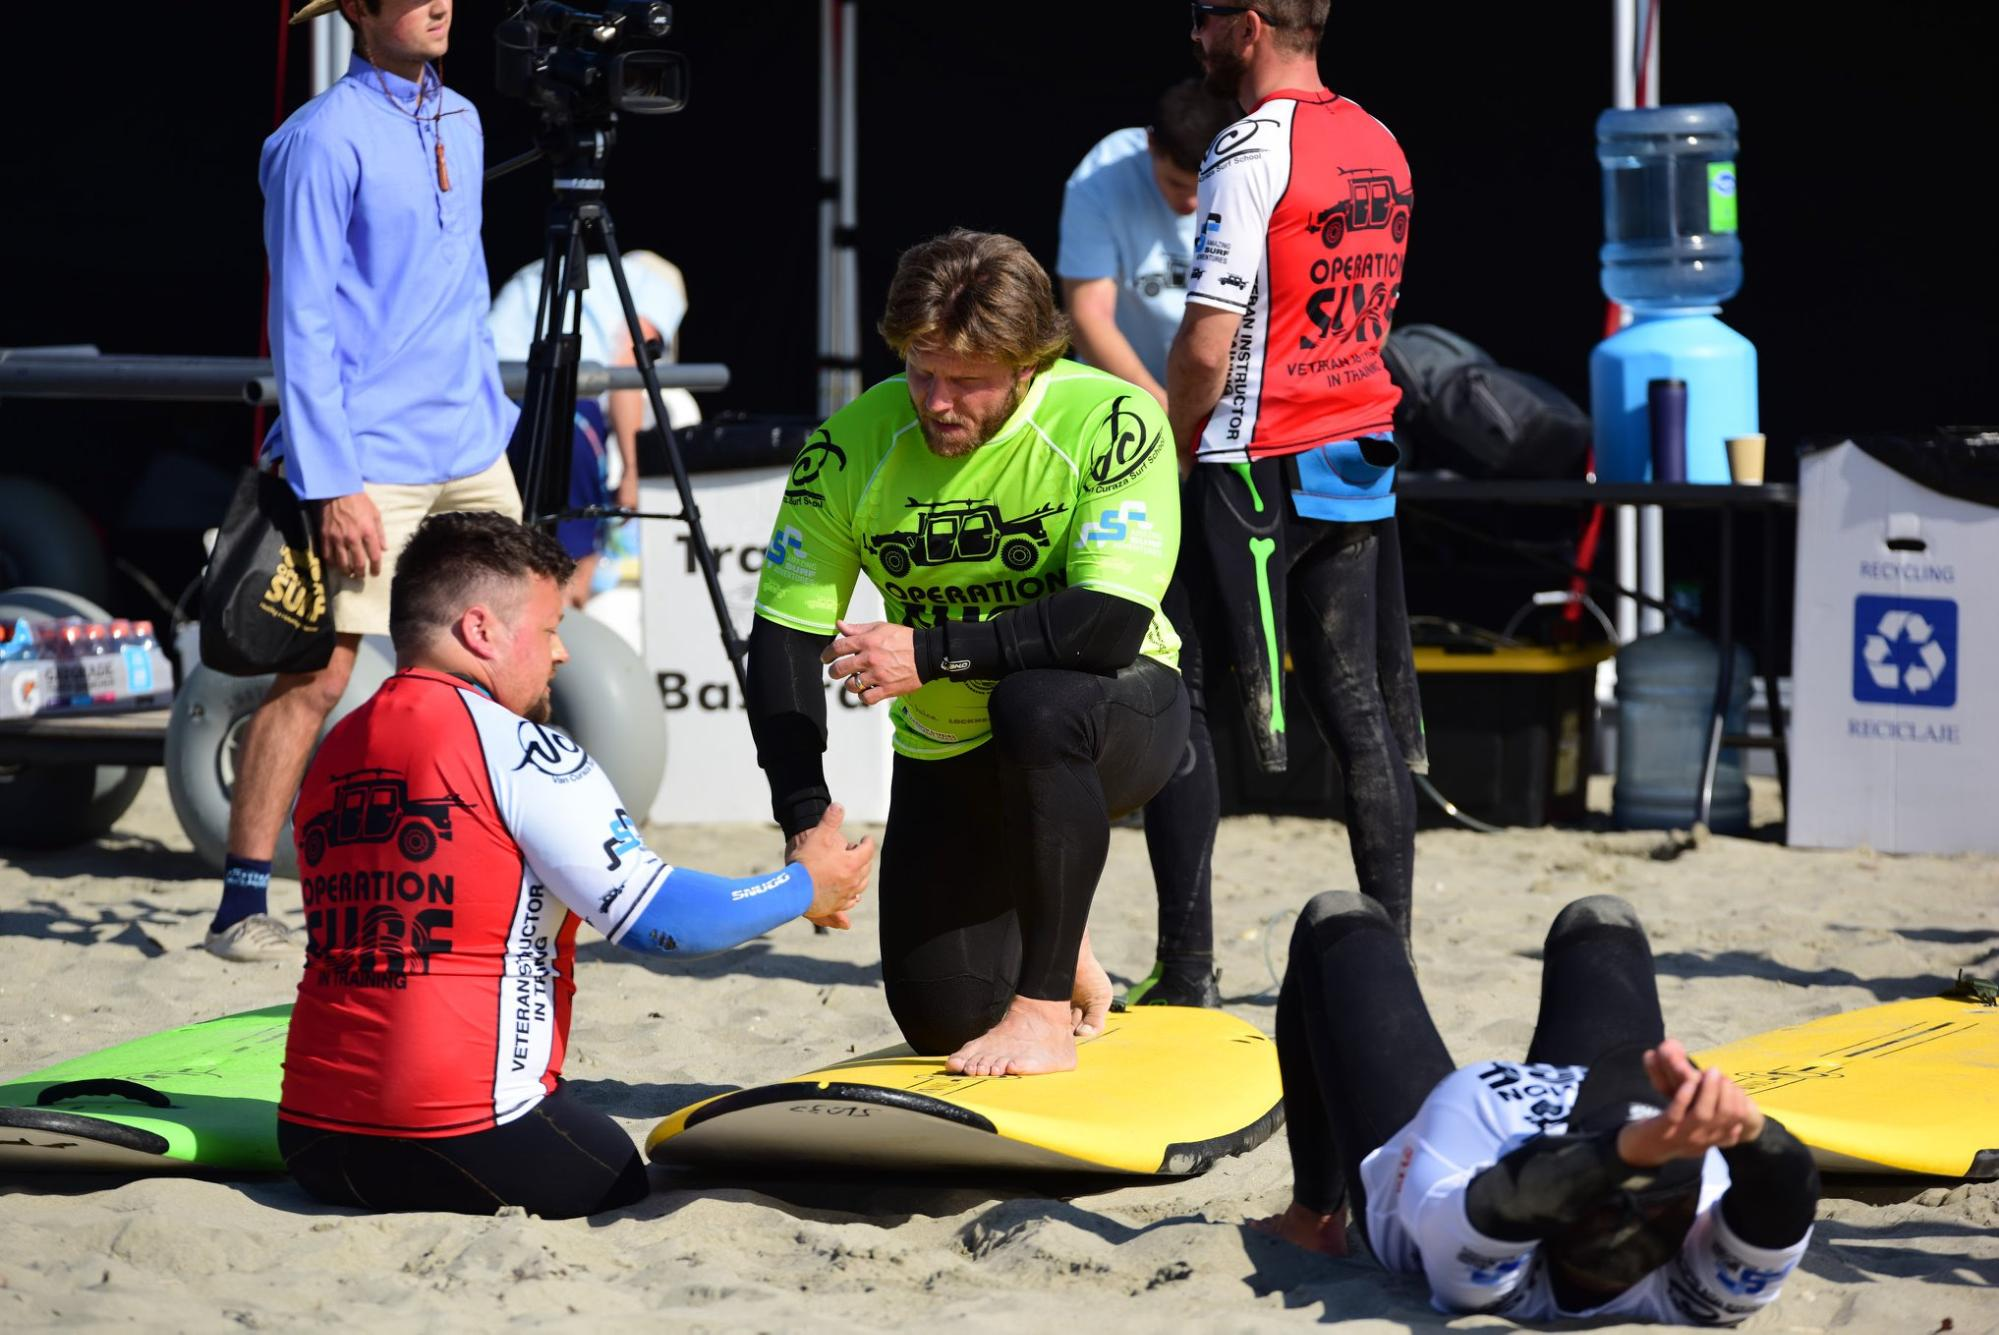 Support for Wounded Veterans through Operation Surf